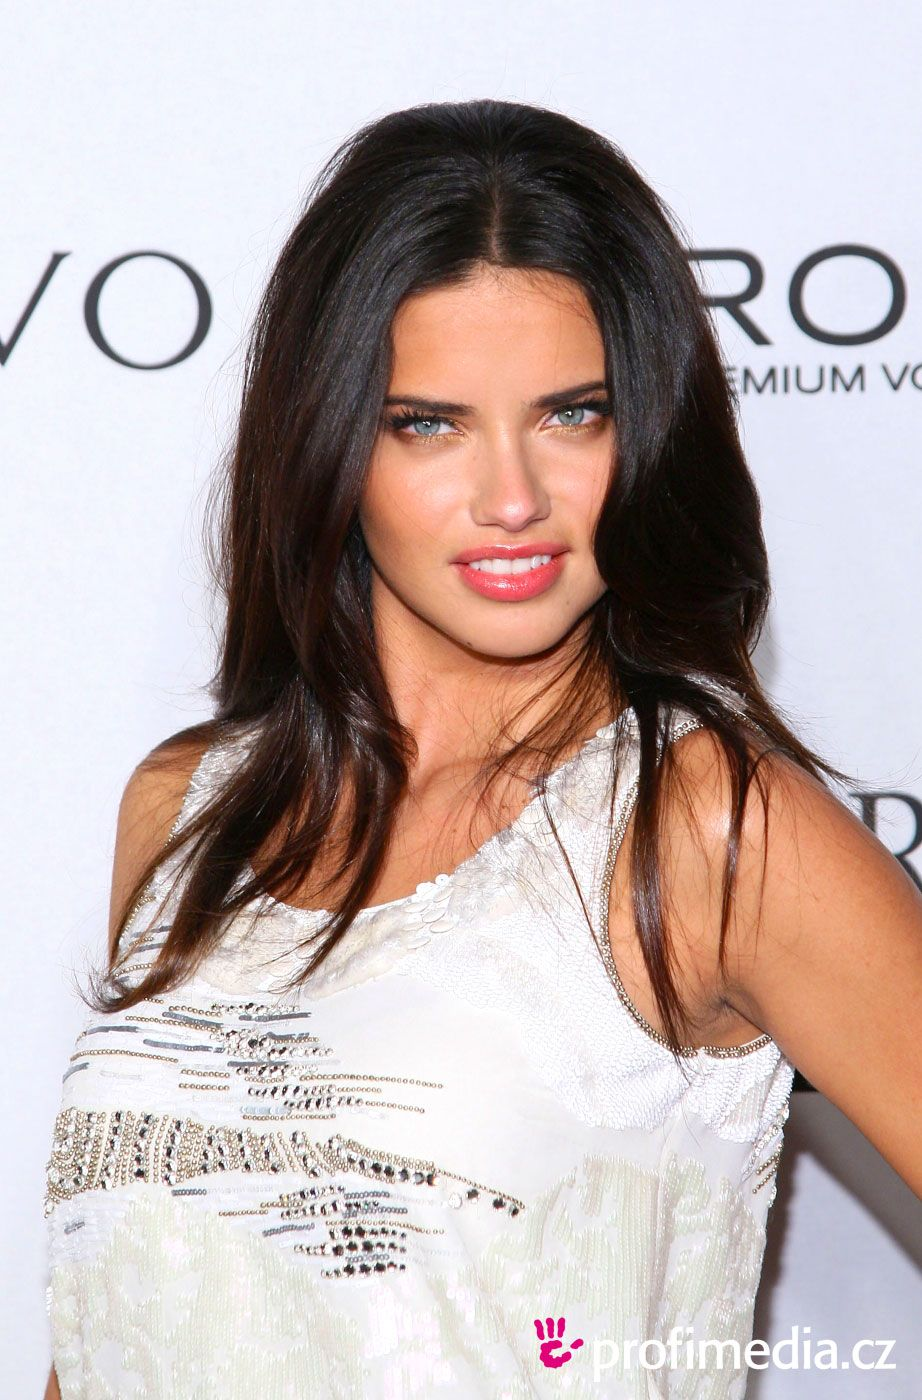 Adriana lima hairstyles 2014 - Adriana Lima Hairstyles Pictures Jpg 922 1400